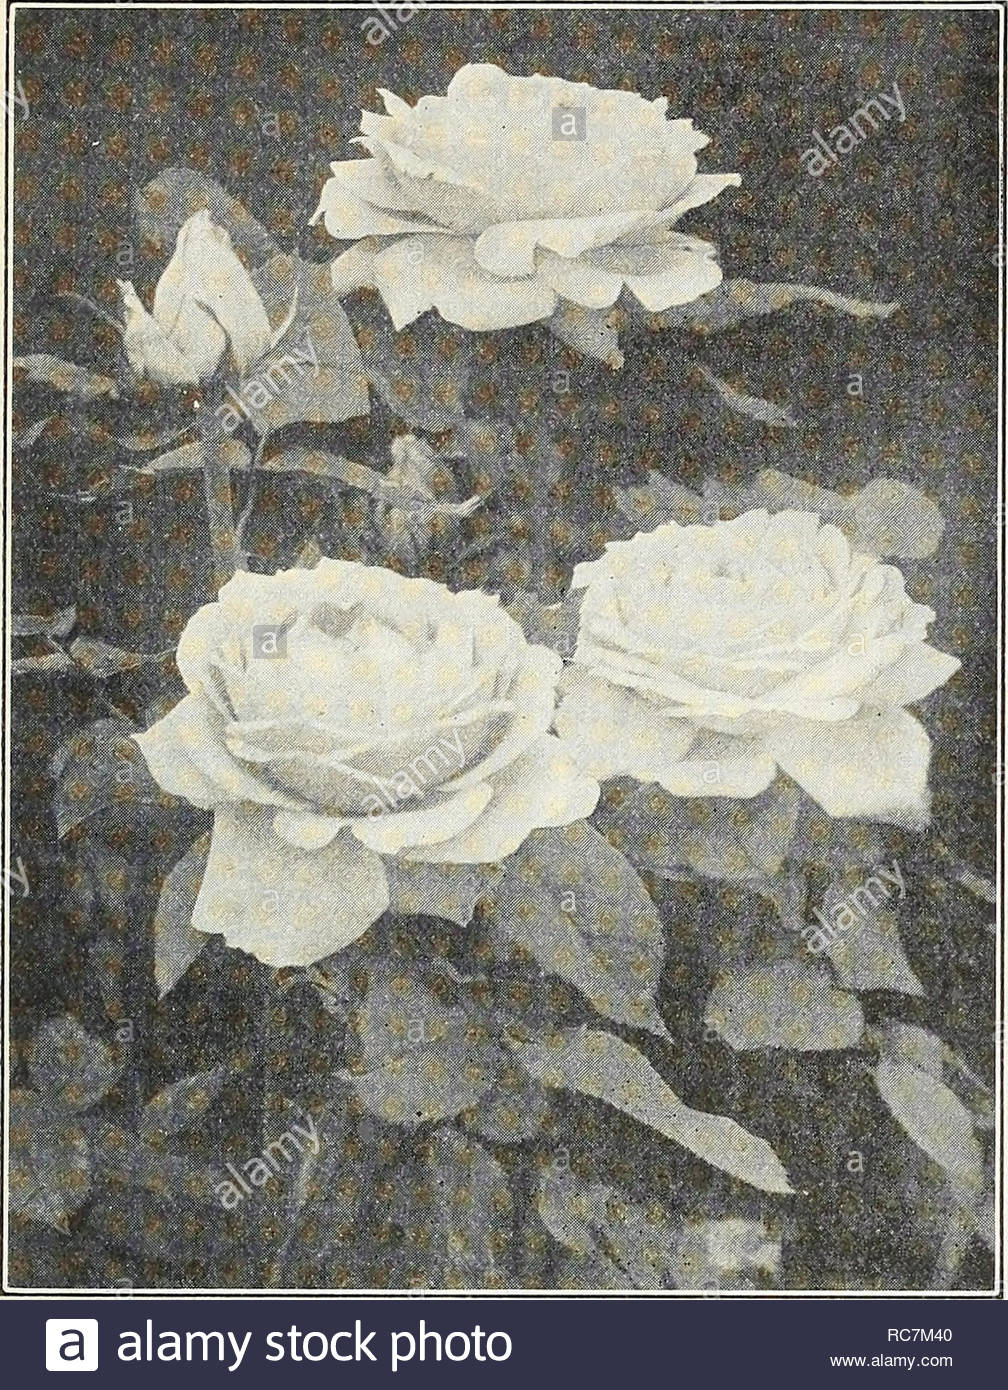 dreers garden roses for autumn planting roses seeds catalogs nursery stock catalogs flowers seeds catalogs flehiyail select tvoses gthimbeliphrlk 13 new hybrid perpetual rose mme albert barbibr mrs john laing soft pink of splendid form exceedingly fragrant and very free flowering mrs r g sharman crawford deep rosy pink outer petals shaded with flesh one of the freest bloomers and a splen did rose in every respect price any of the above in strong two year old dormant plants special offer one each of the above 16 varieties a splendid collection of these absolutel RC7M40